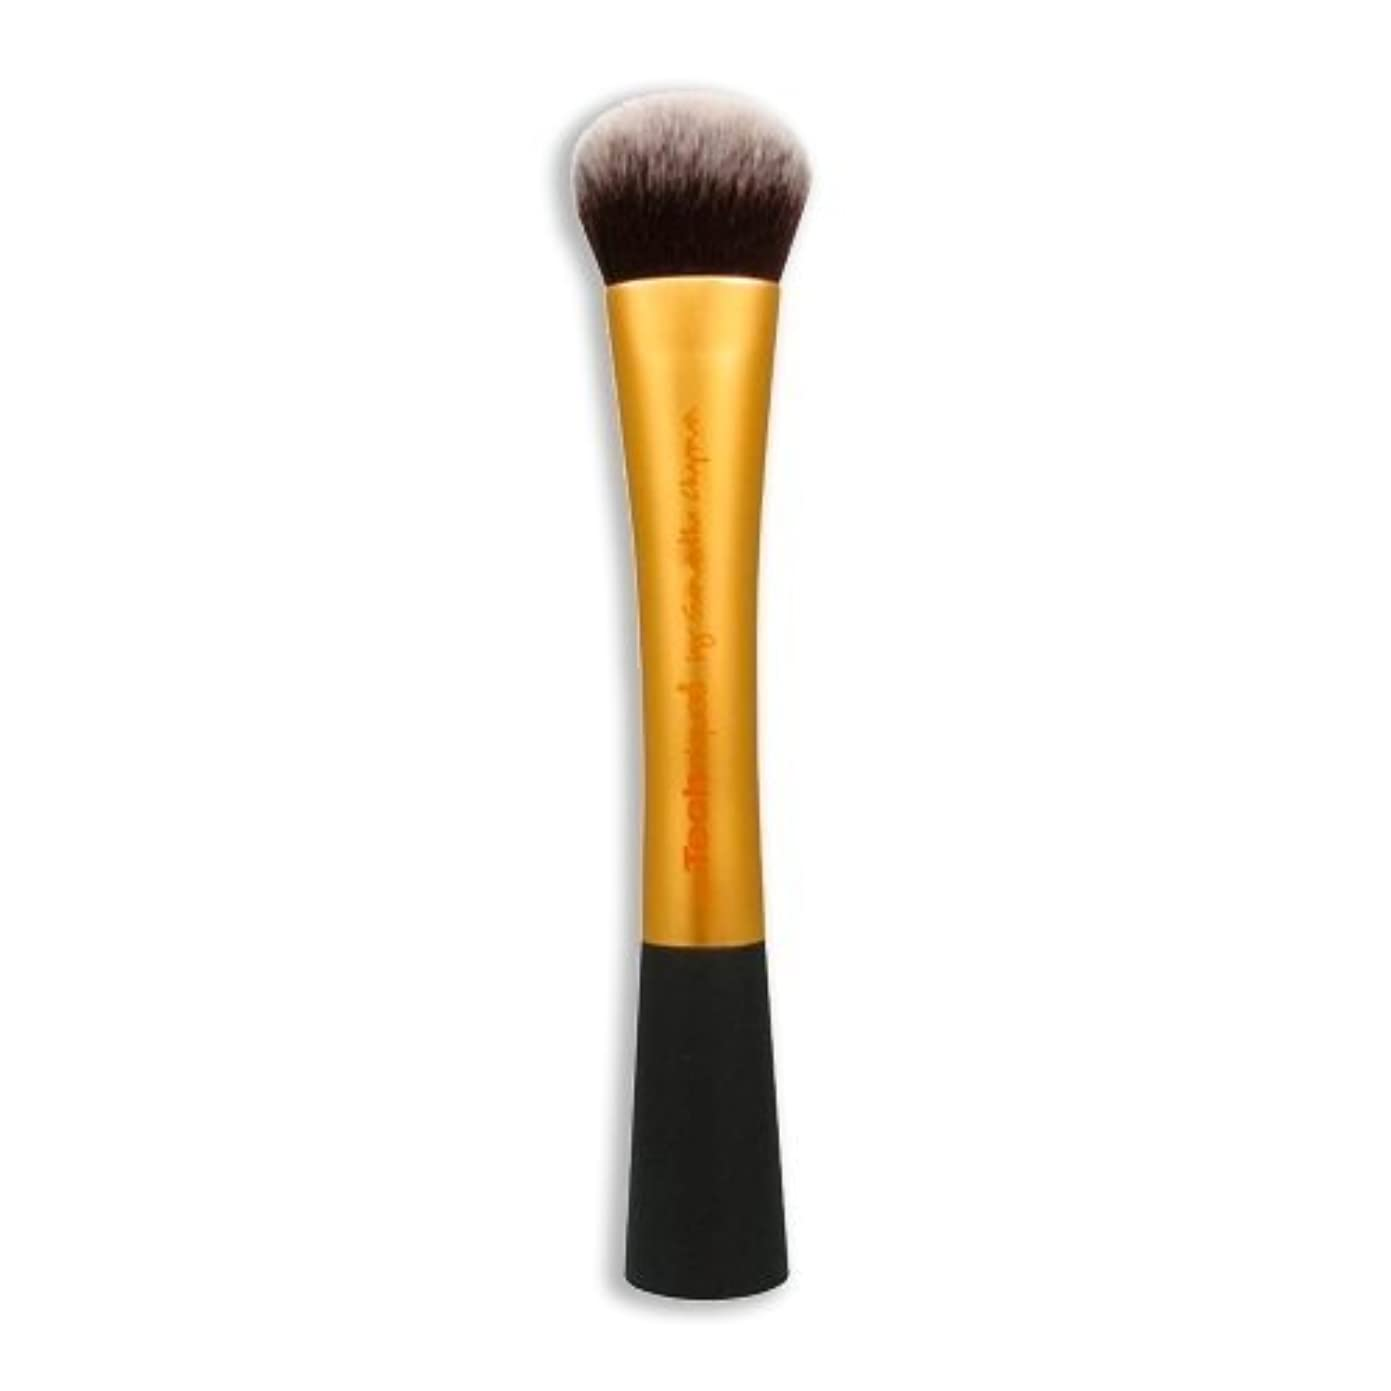 混雑ギャザー甘くするReal Techniques Expert Face Brush - Expert Face Brush (並行輸入品)